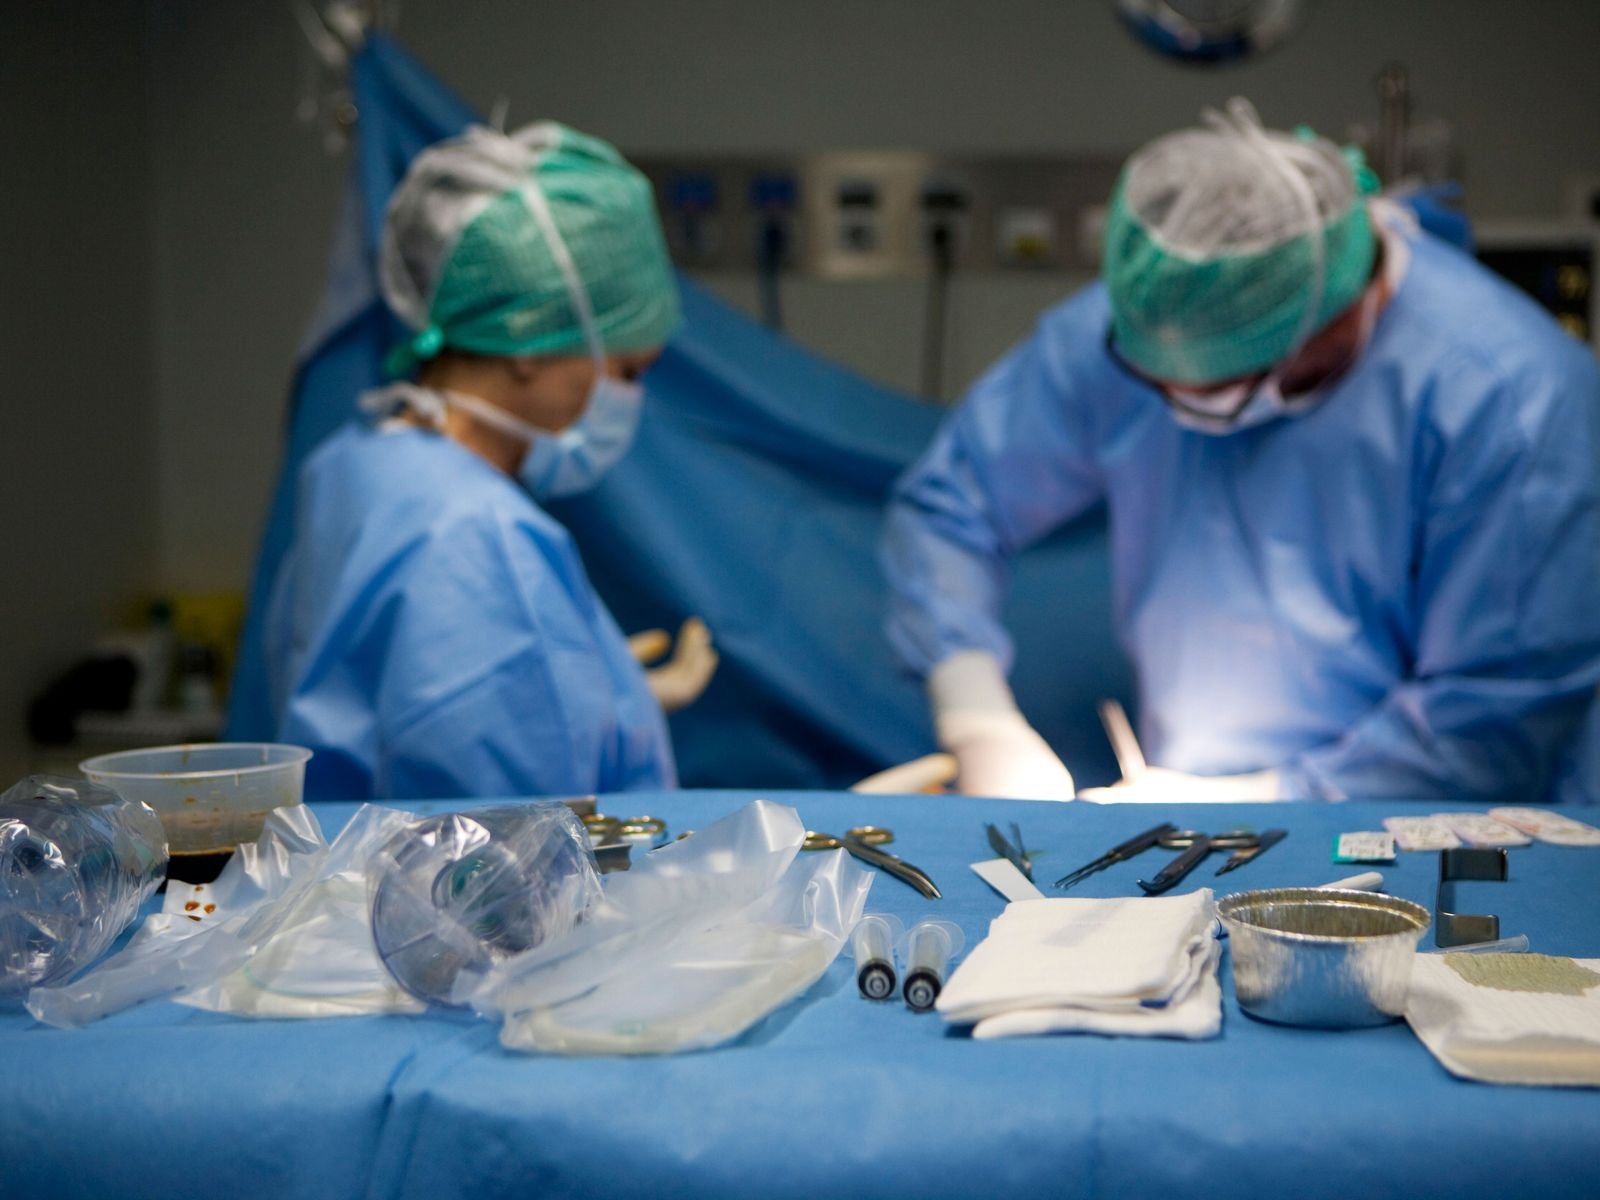 Awash with 'blue wrap' and sanitised bags, modern surgery is germ-controlling because of a proliferation of ...